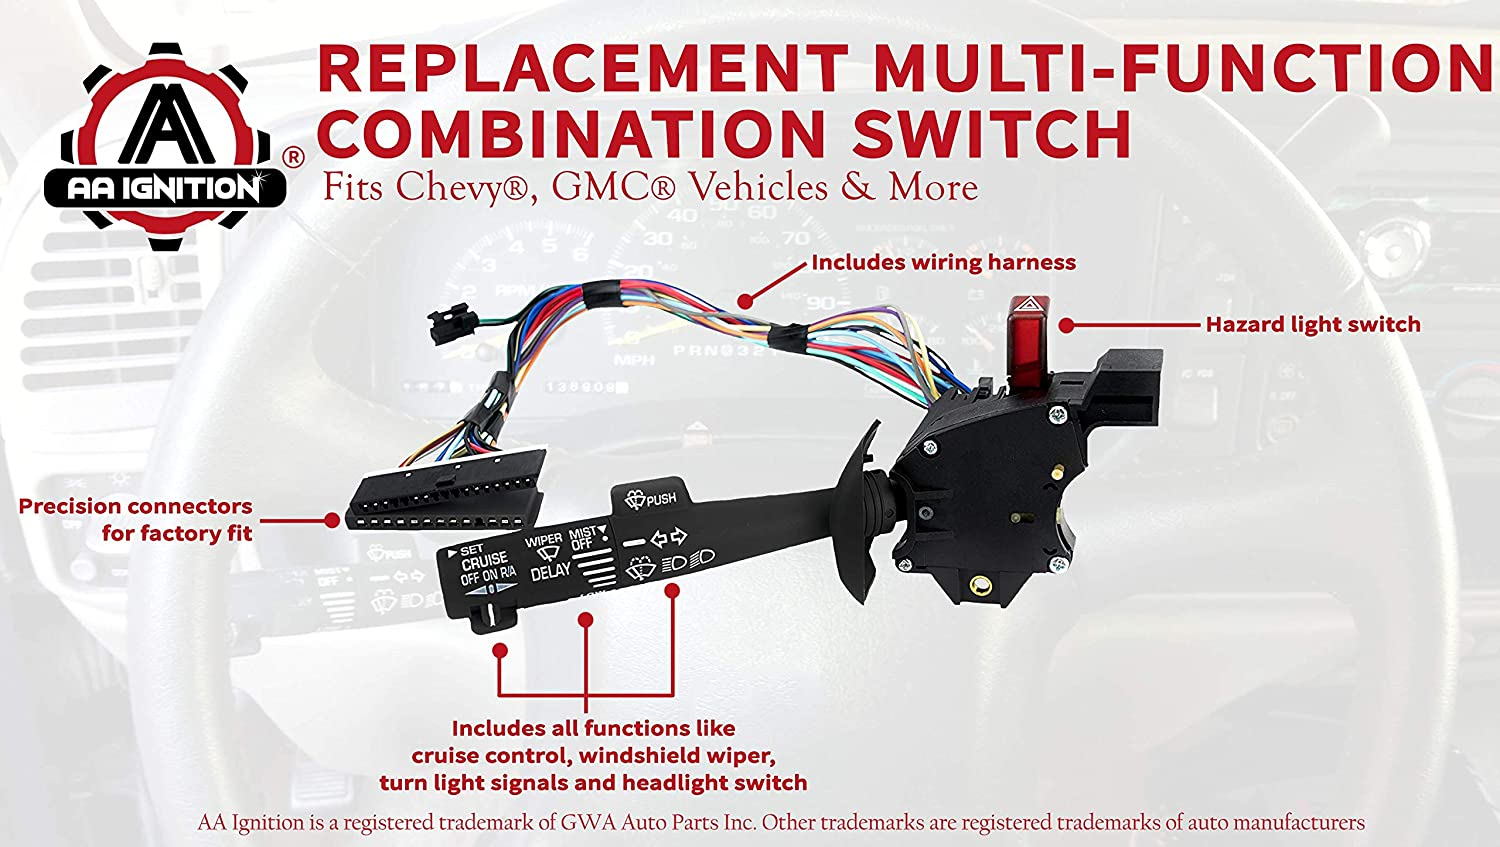 Amazon.com: Multi-Function Combination Switch - Turn Signal ... on chevy ignition switch diagram, 1990 454 chevy engine diagram, gmc truck wiring diagram, fleetwood rv wiring diagram, chevy p30 dimensions, chevy p30 transmission, chevy p30 engine, chevy p30 chassis, chevy p30 exhaust system, chevy p30 brakes, chevy p30 steering, chevy p30 rear suspension, chevy p30 tires, chevy p30 drive shaft, fleetwood mobile home wiring diagram, chevy p30 electrical, chevy p30 regulator diagram, 1978 chevrolet wiring diagram, chevy p30 parts, chevy p30 relay,